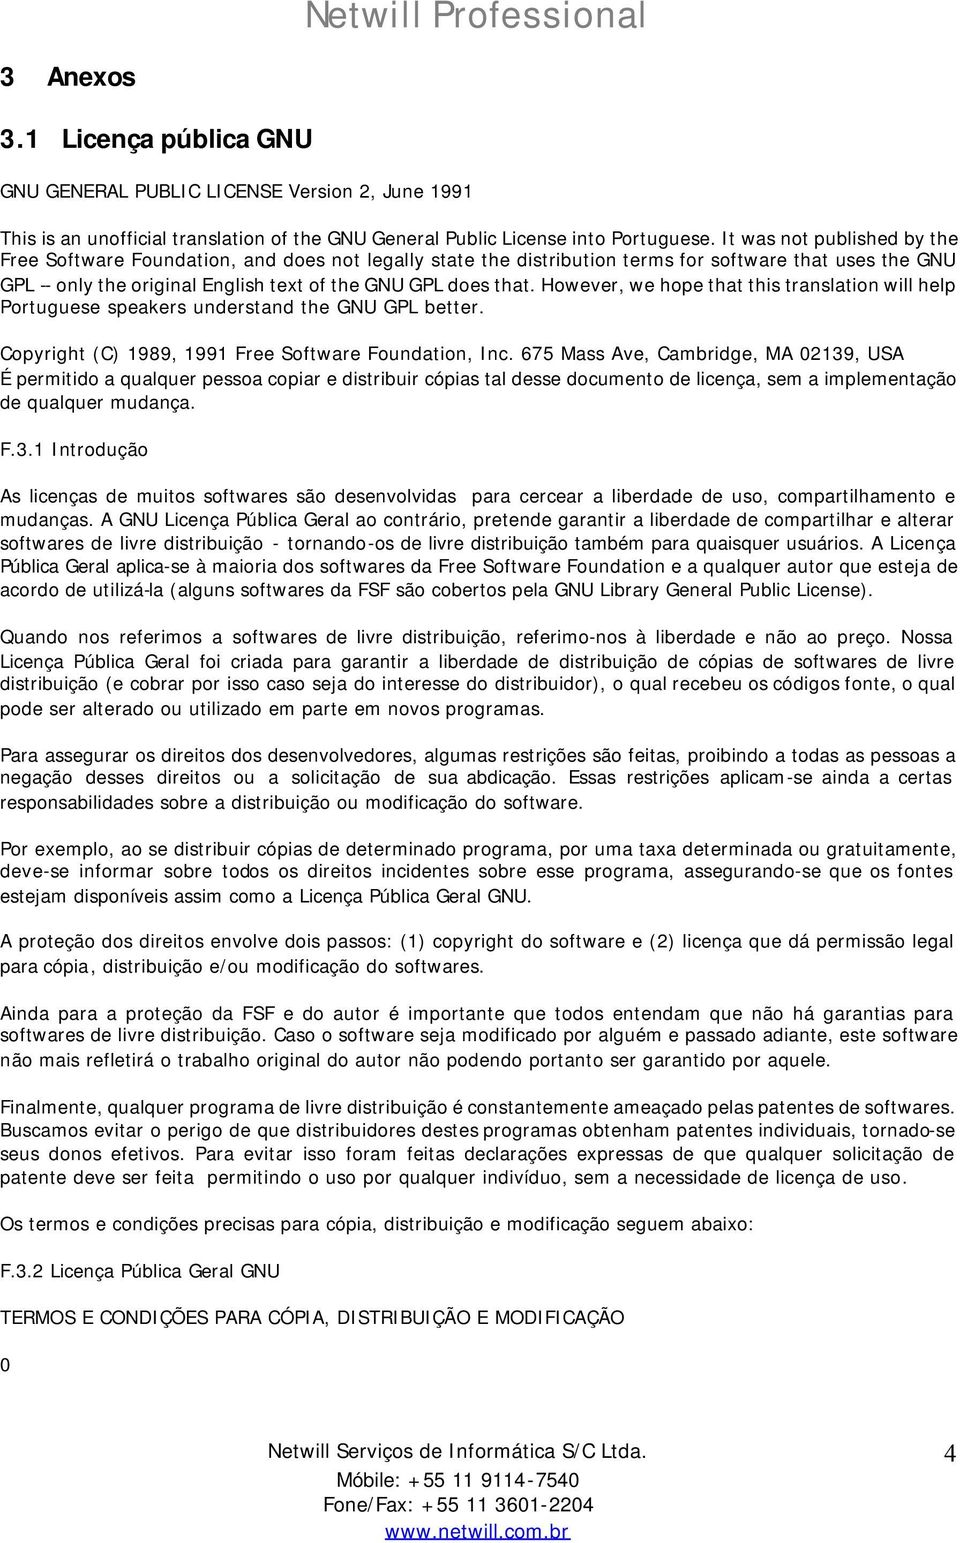 However, we hope that this translation will help Portuguese speakers understand the GNU GPL better. Copyright (C) 1989, 1991 Free Software Foundation, Inc.